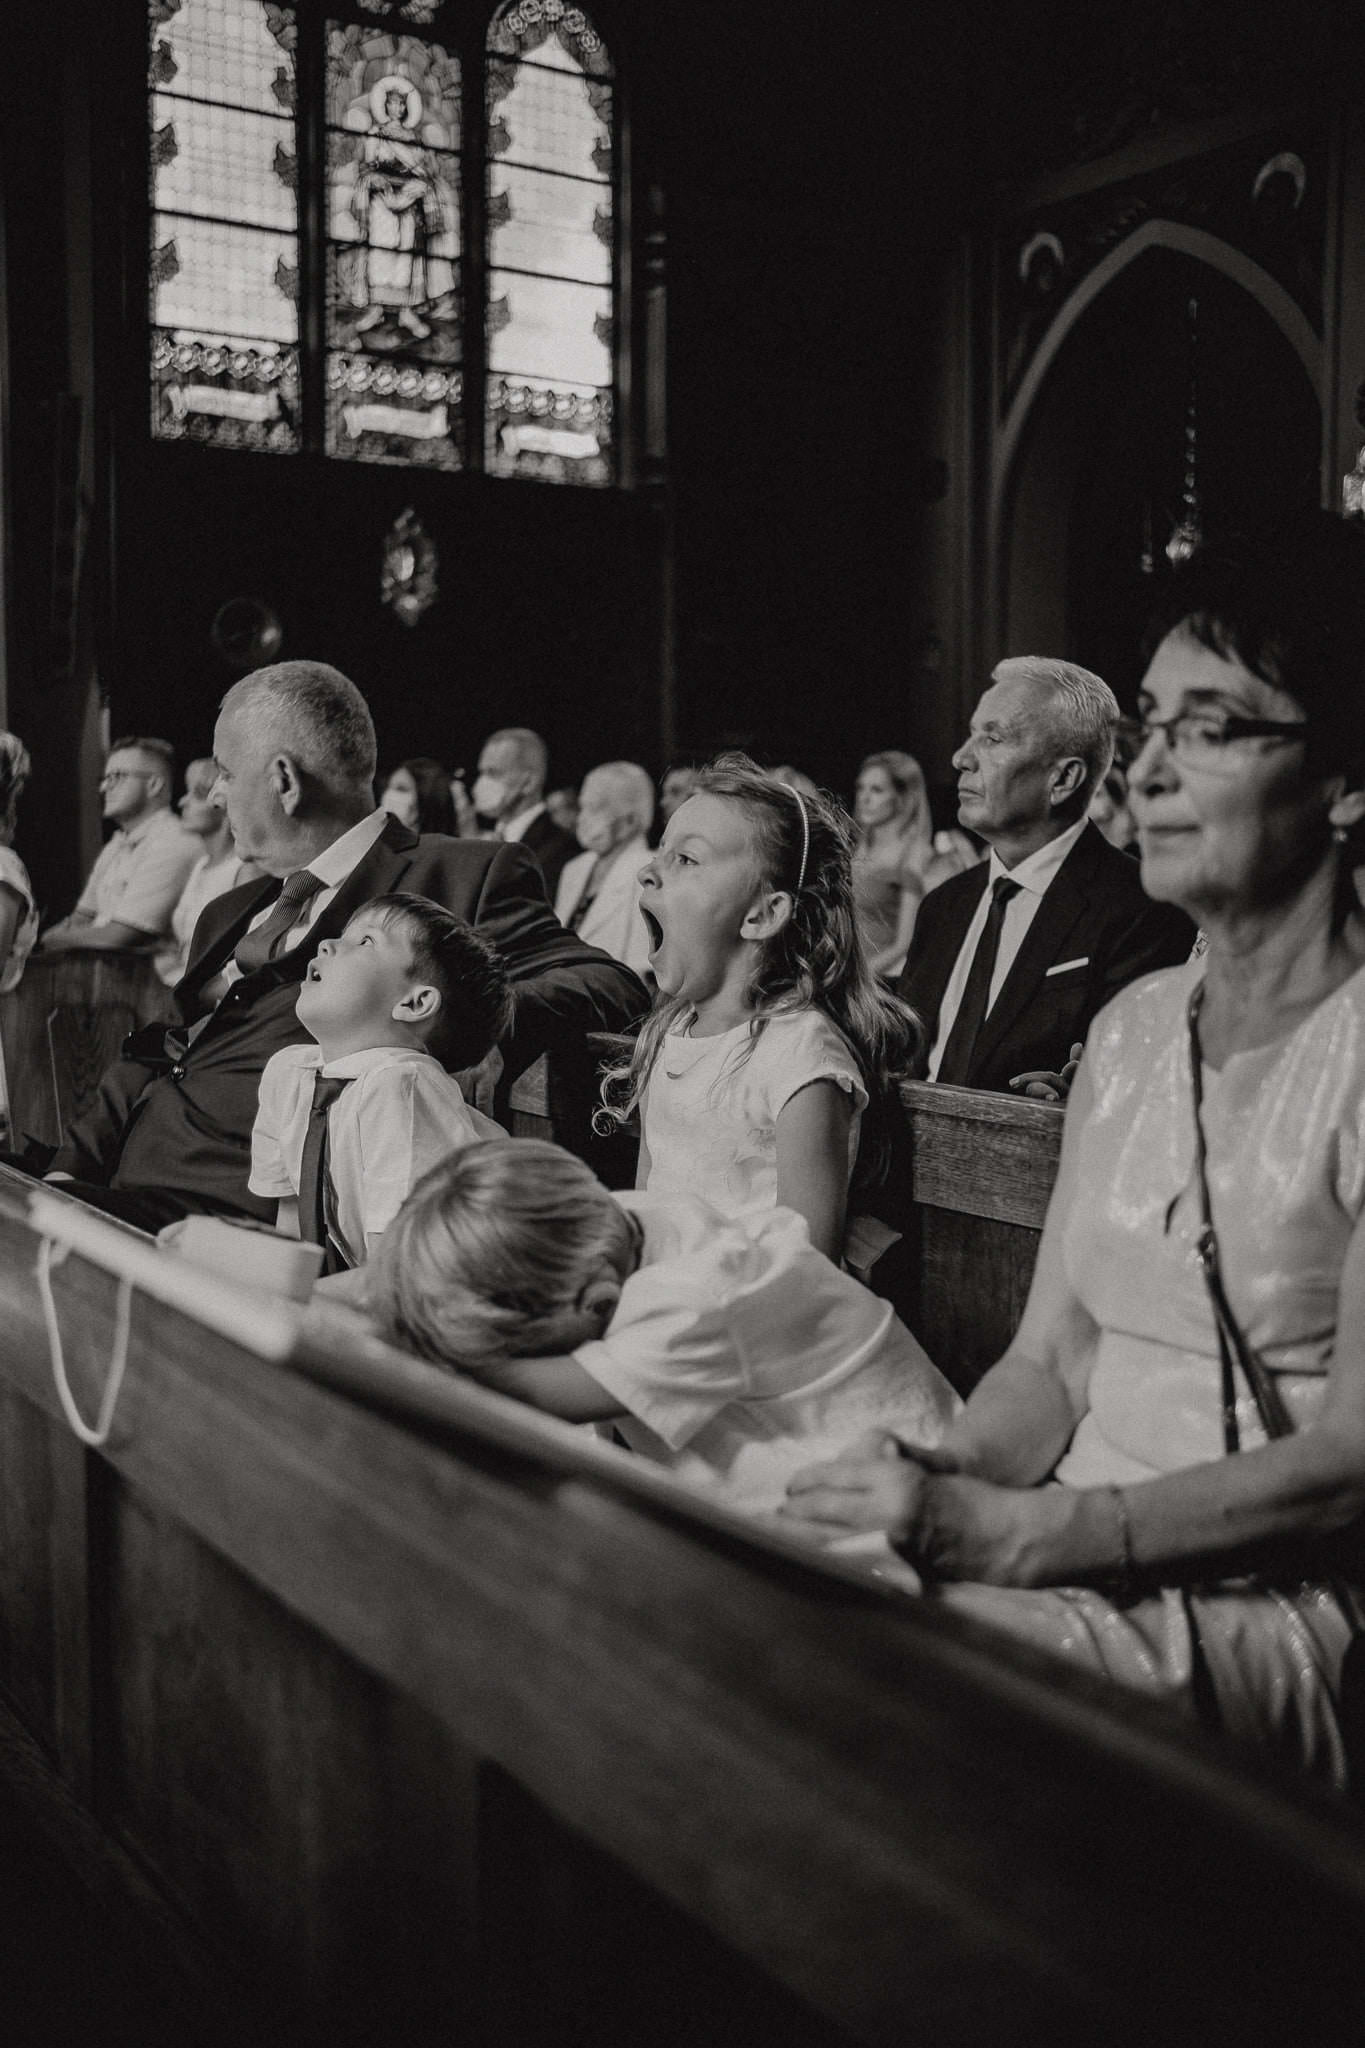 Kids are extremly bored during a wedding ceremony in the church